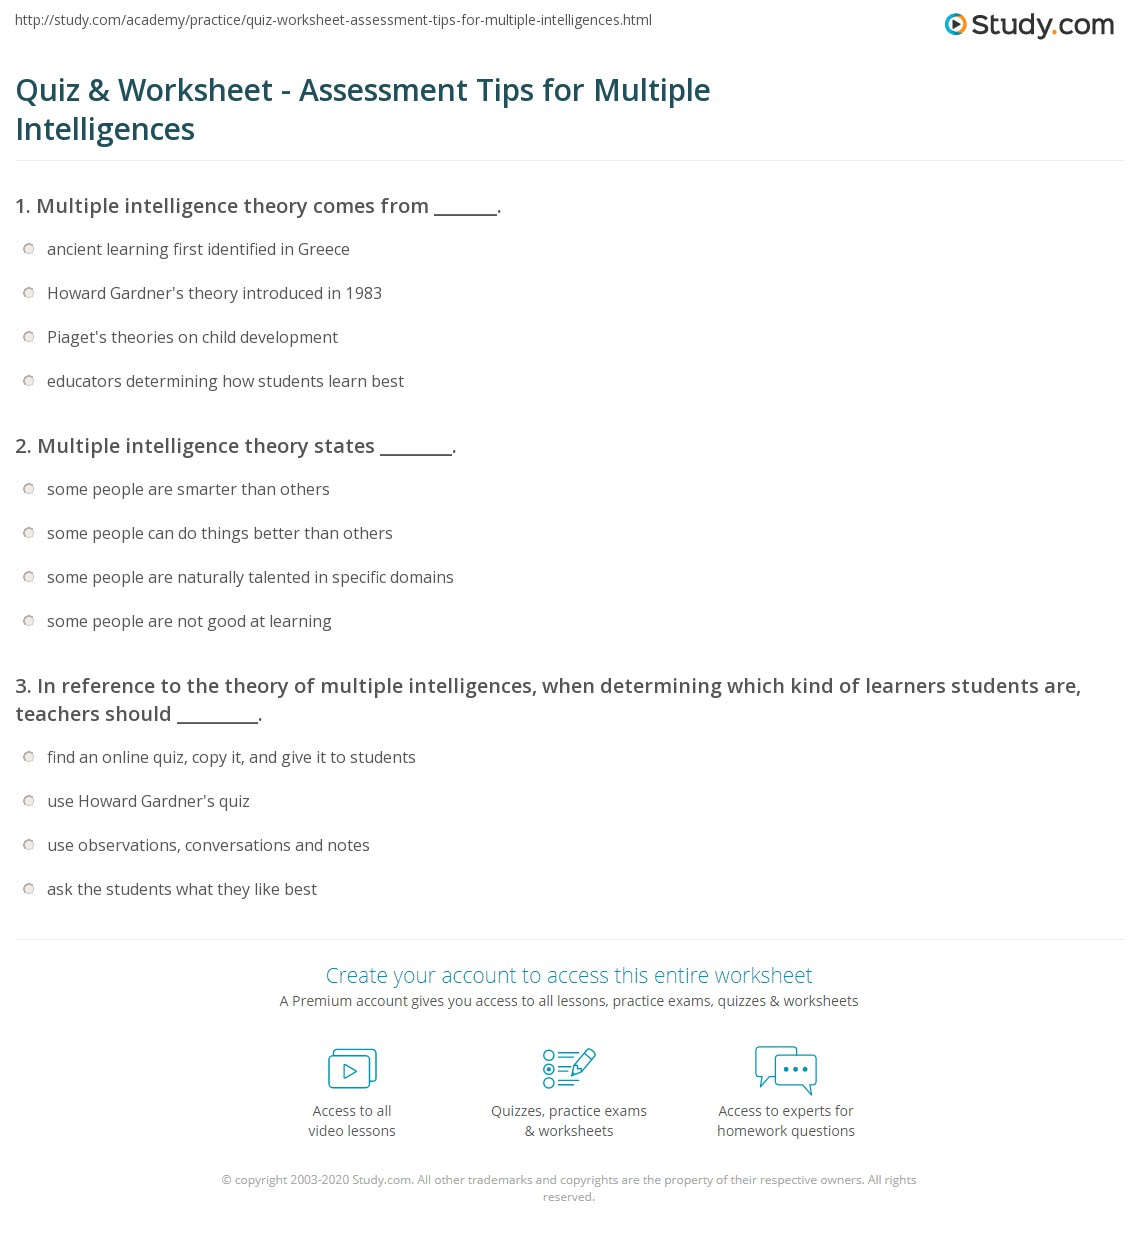 graphic relating to Multiple Intelligence Test Printable named Quiz Worksheet - Analysis Guidelines for Various